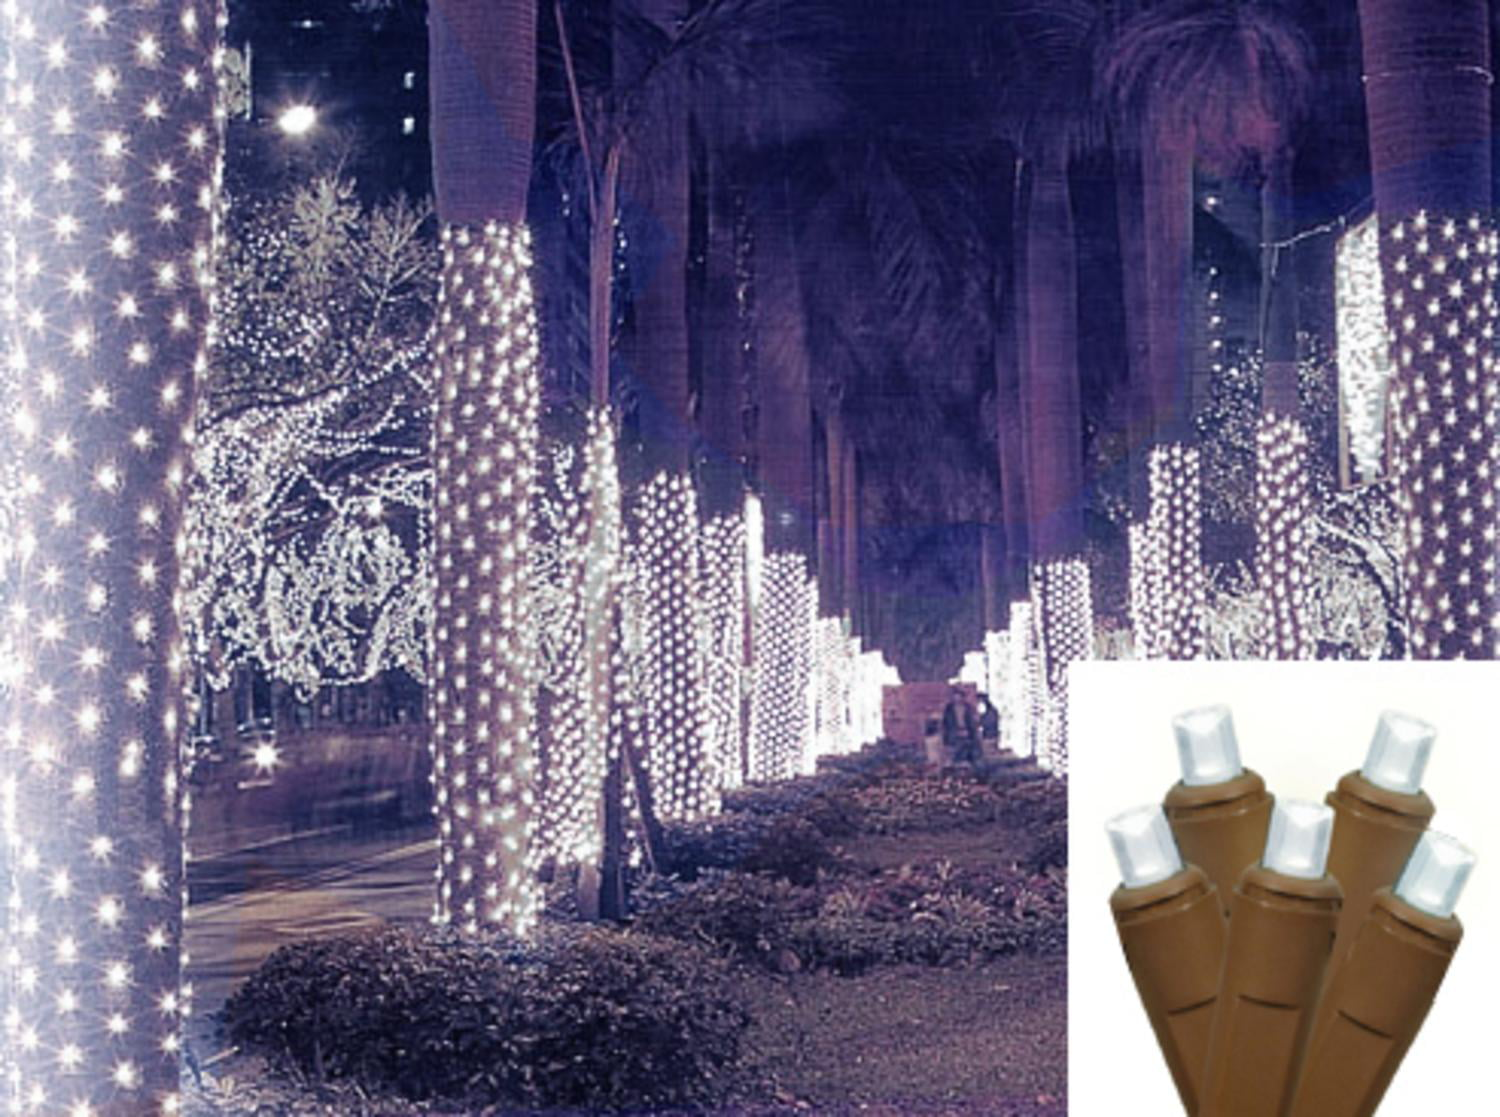 2 x 8 cool white led net style tree trunk wrap christmas lights brown wire walmartcom - Brown Wire Christmas Lights